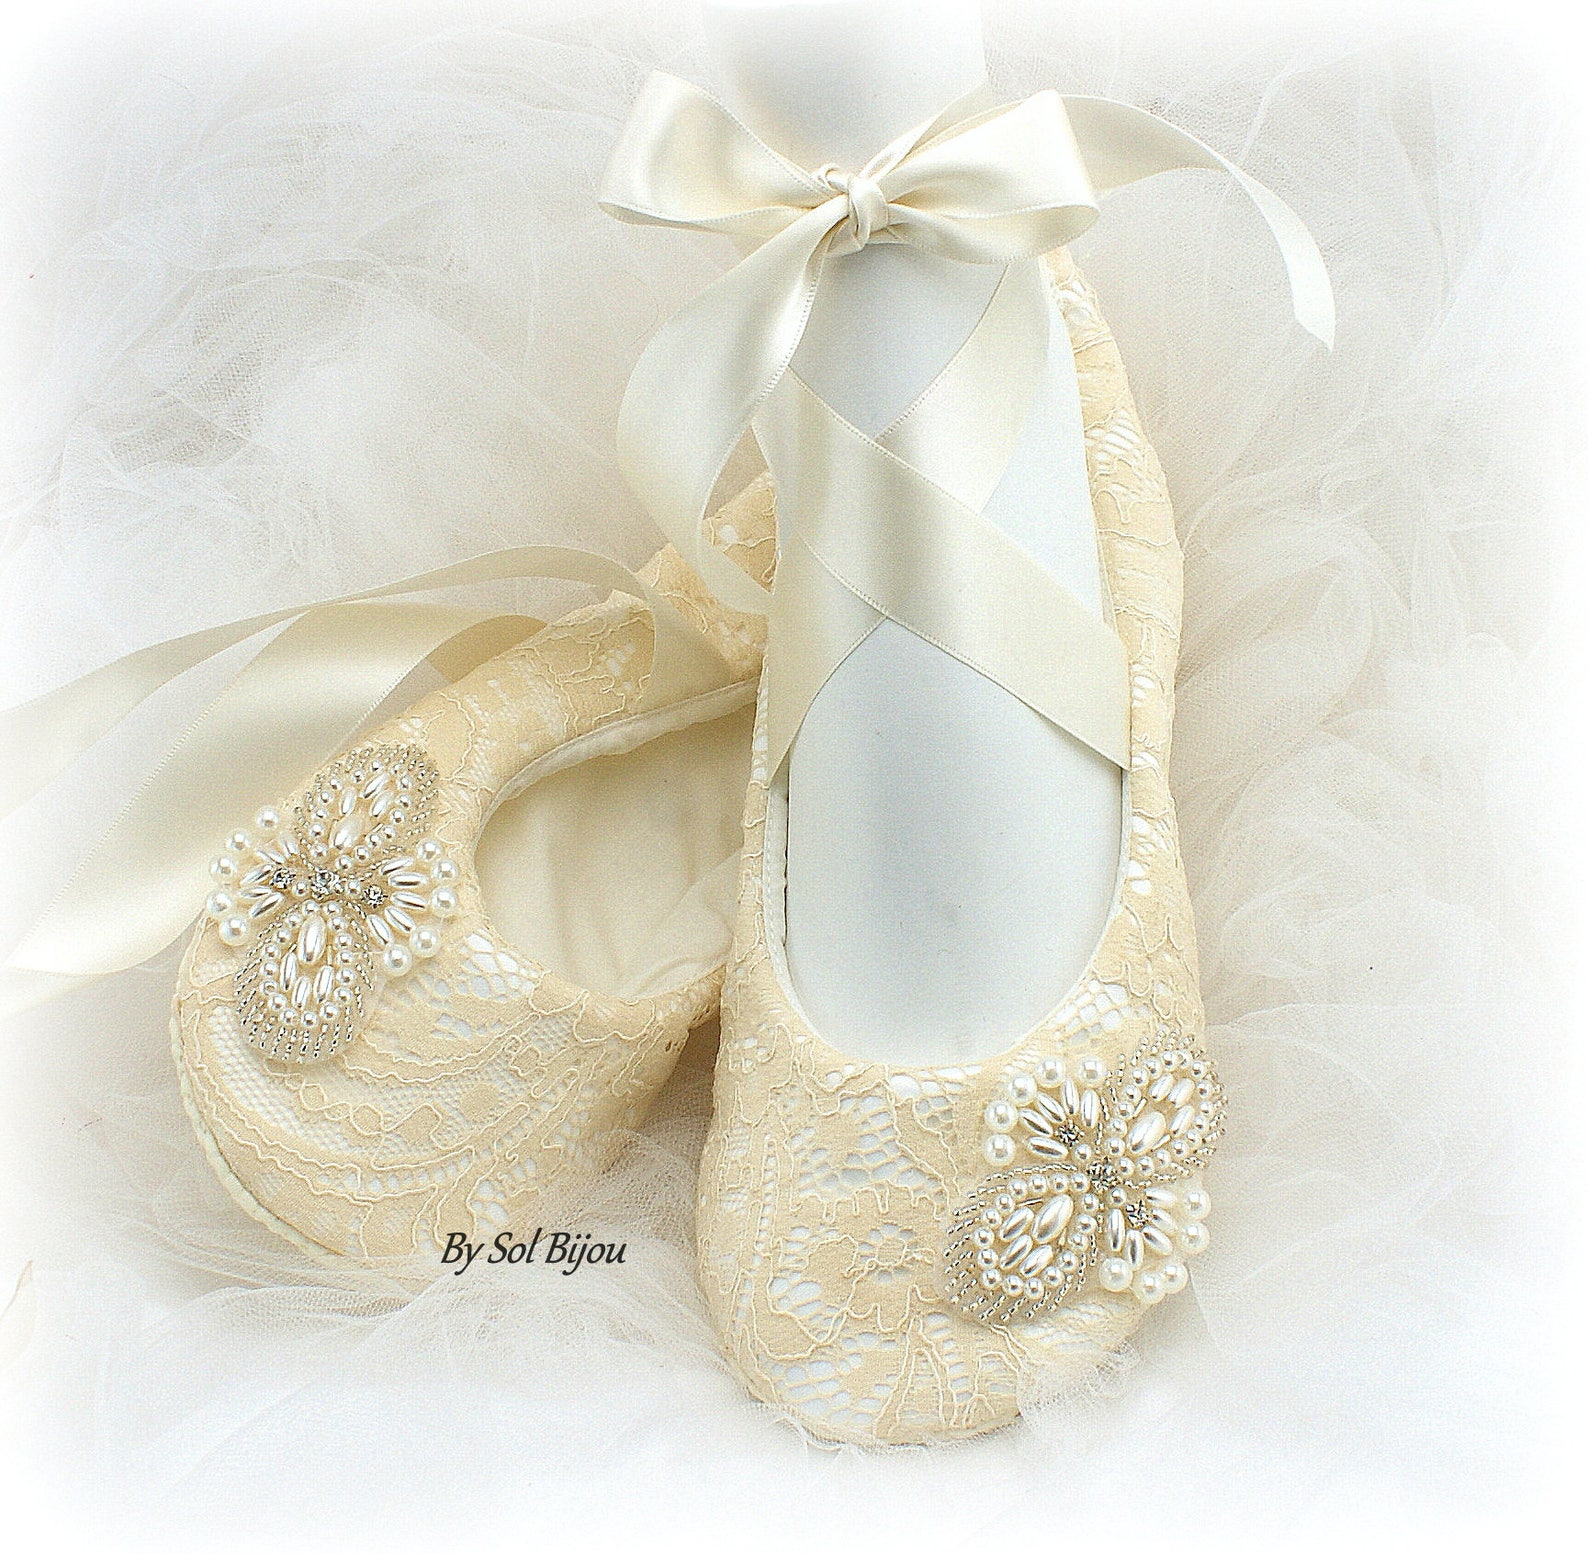 beaded champagne ballet shoes champagne wedding flats ballet flats champagne ballet slippers shoes with crystals elegant lace sh